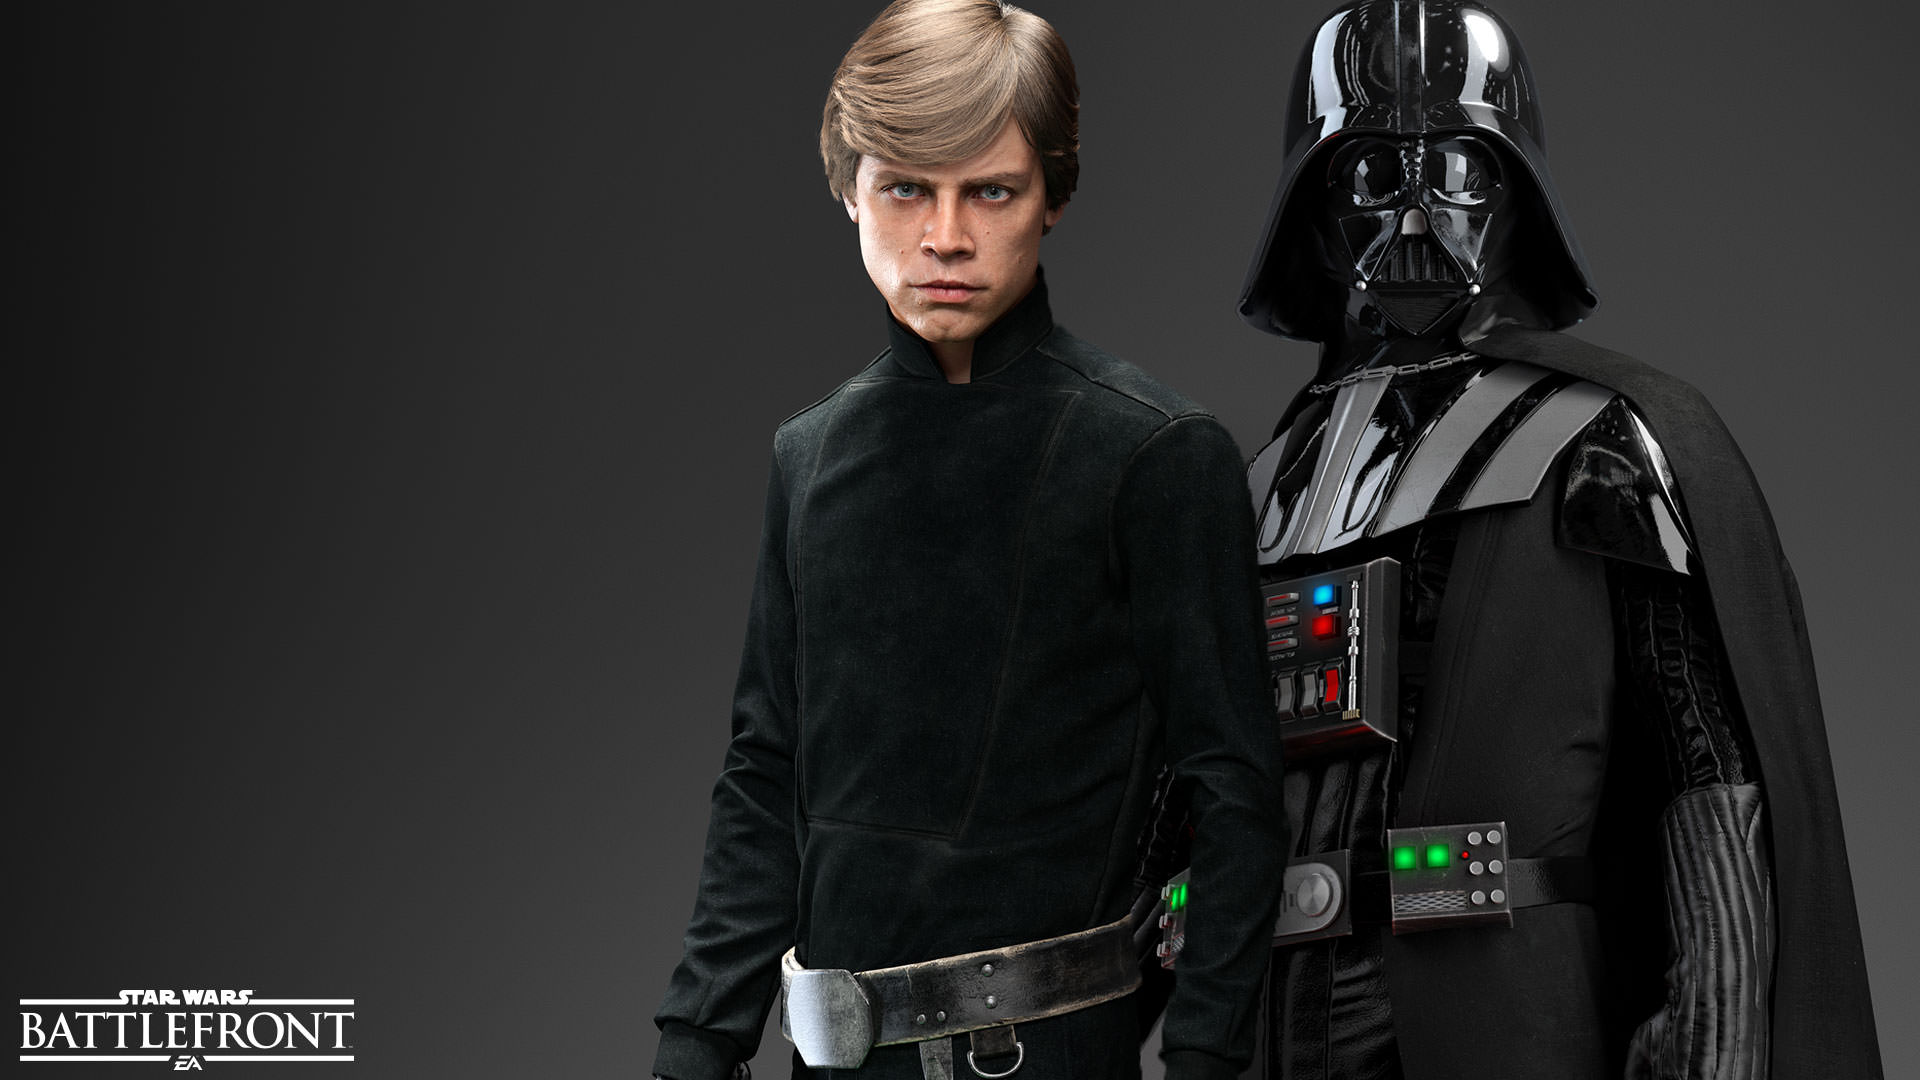 Star Wars Battlefront Features One On One Sith Vs Jedi Battles Training Missions